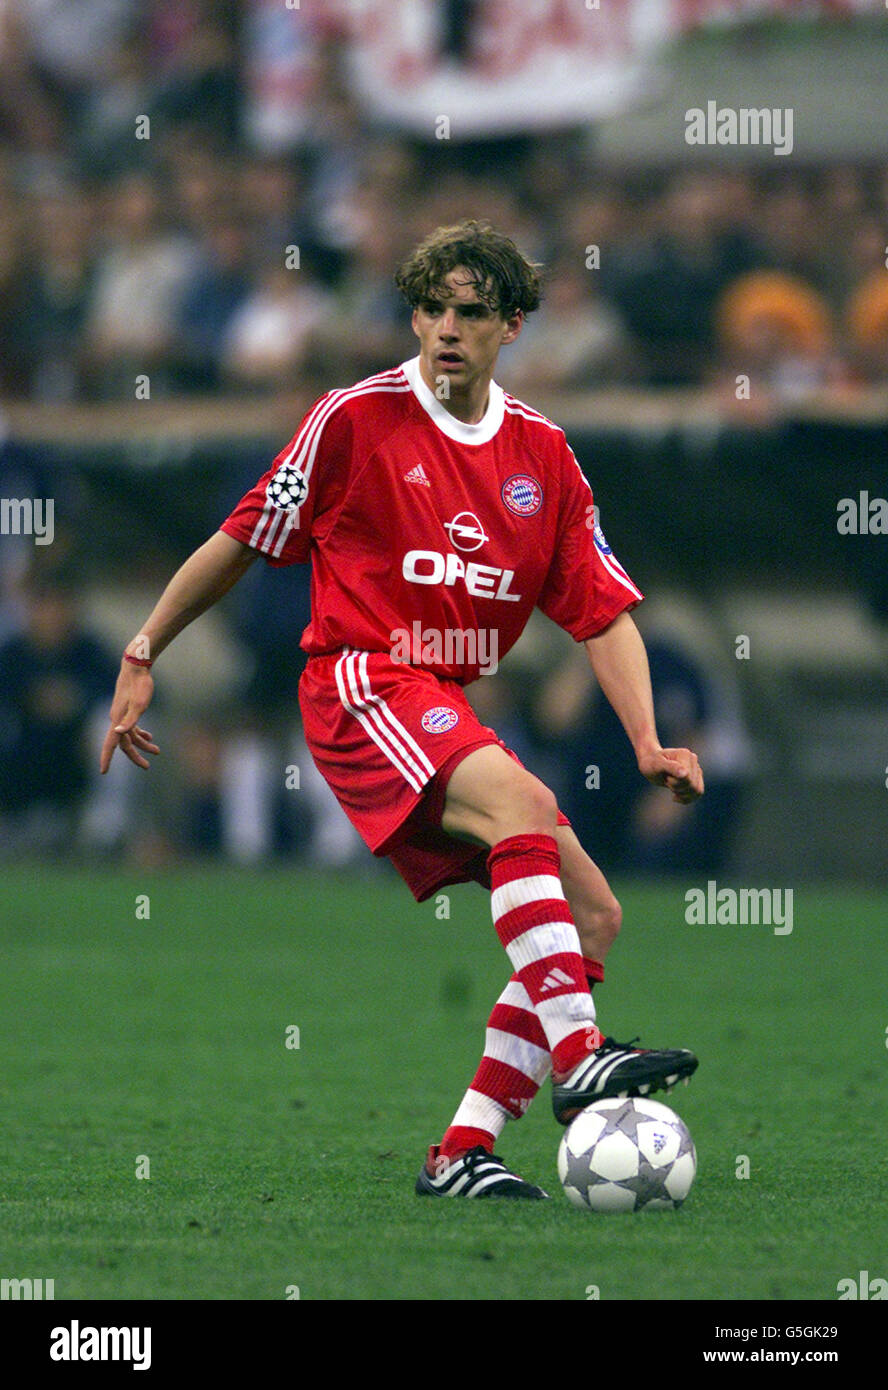 Owen hargreaves stock photos owen hargreaves stock images page 2 bayern munich vs valencia owen hargreaves stock image altavistaventures Choice Image